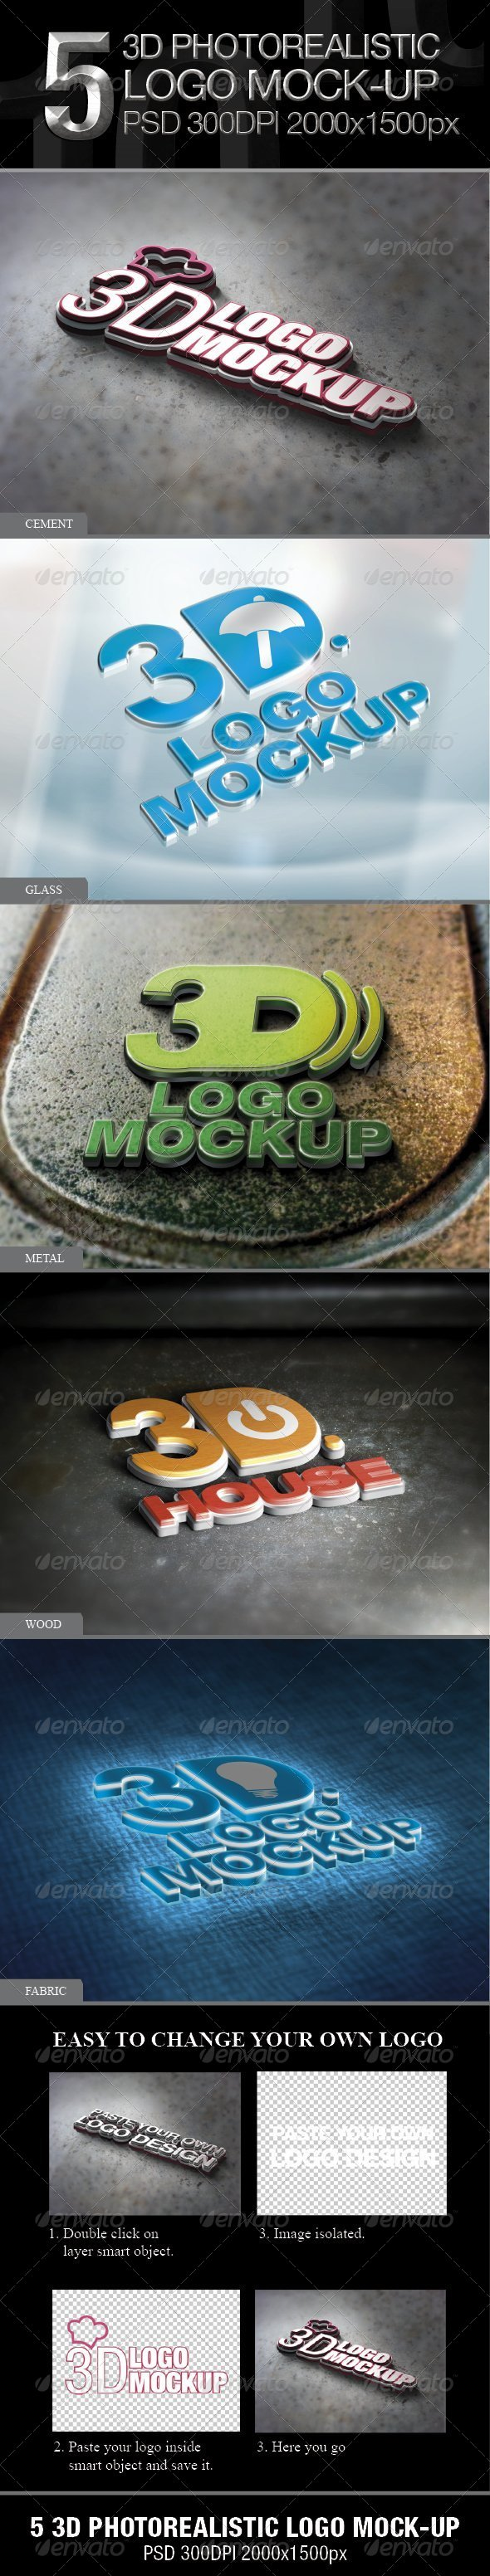 5 3D Photorealistic Logo Mock-up - Logo Product Mock-Ups